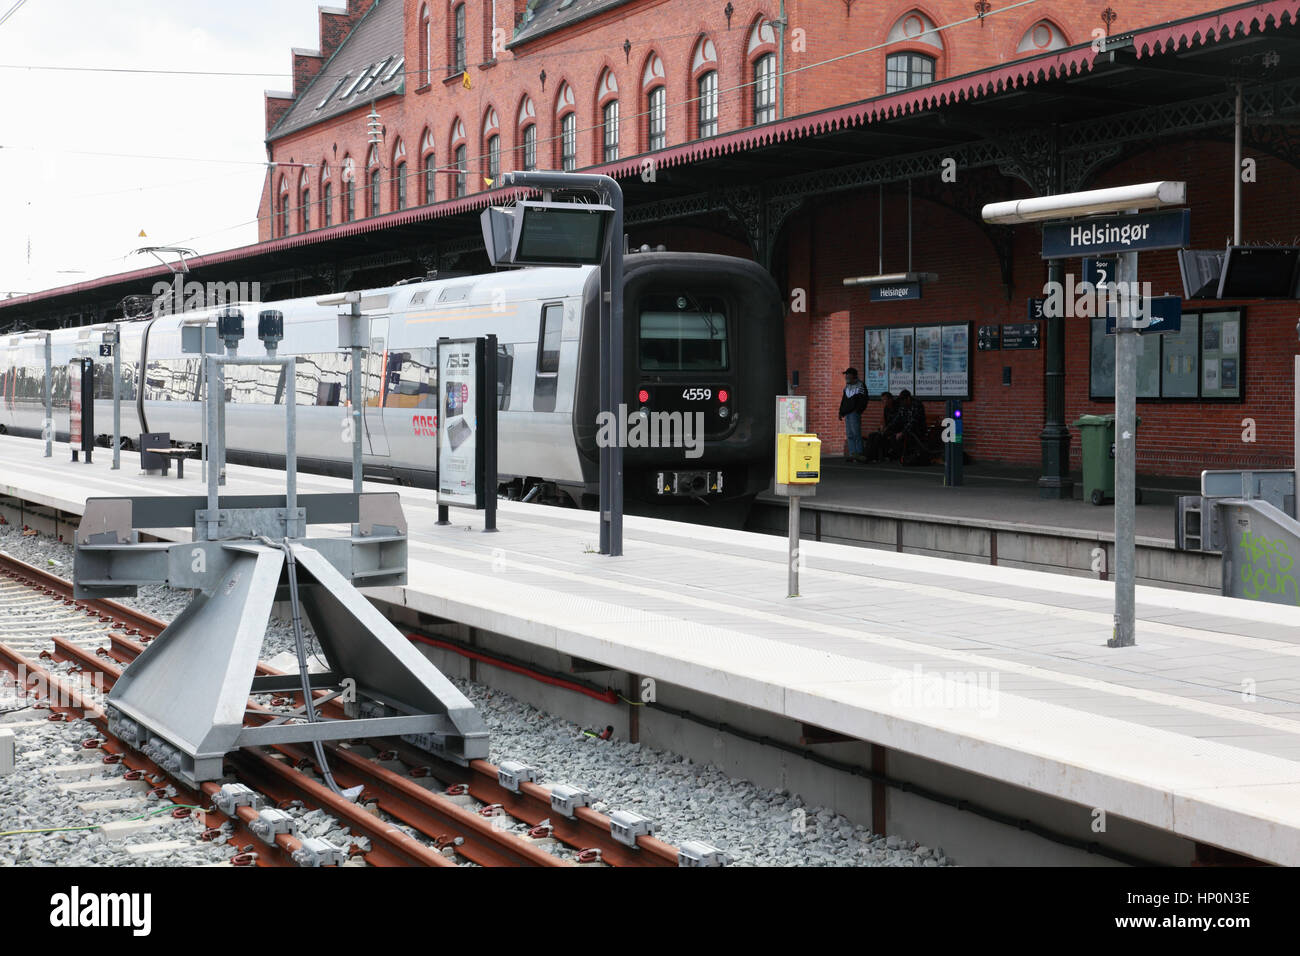 A train standing in the station at Helsingor, Denmark - Stock Image